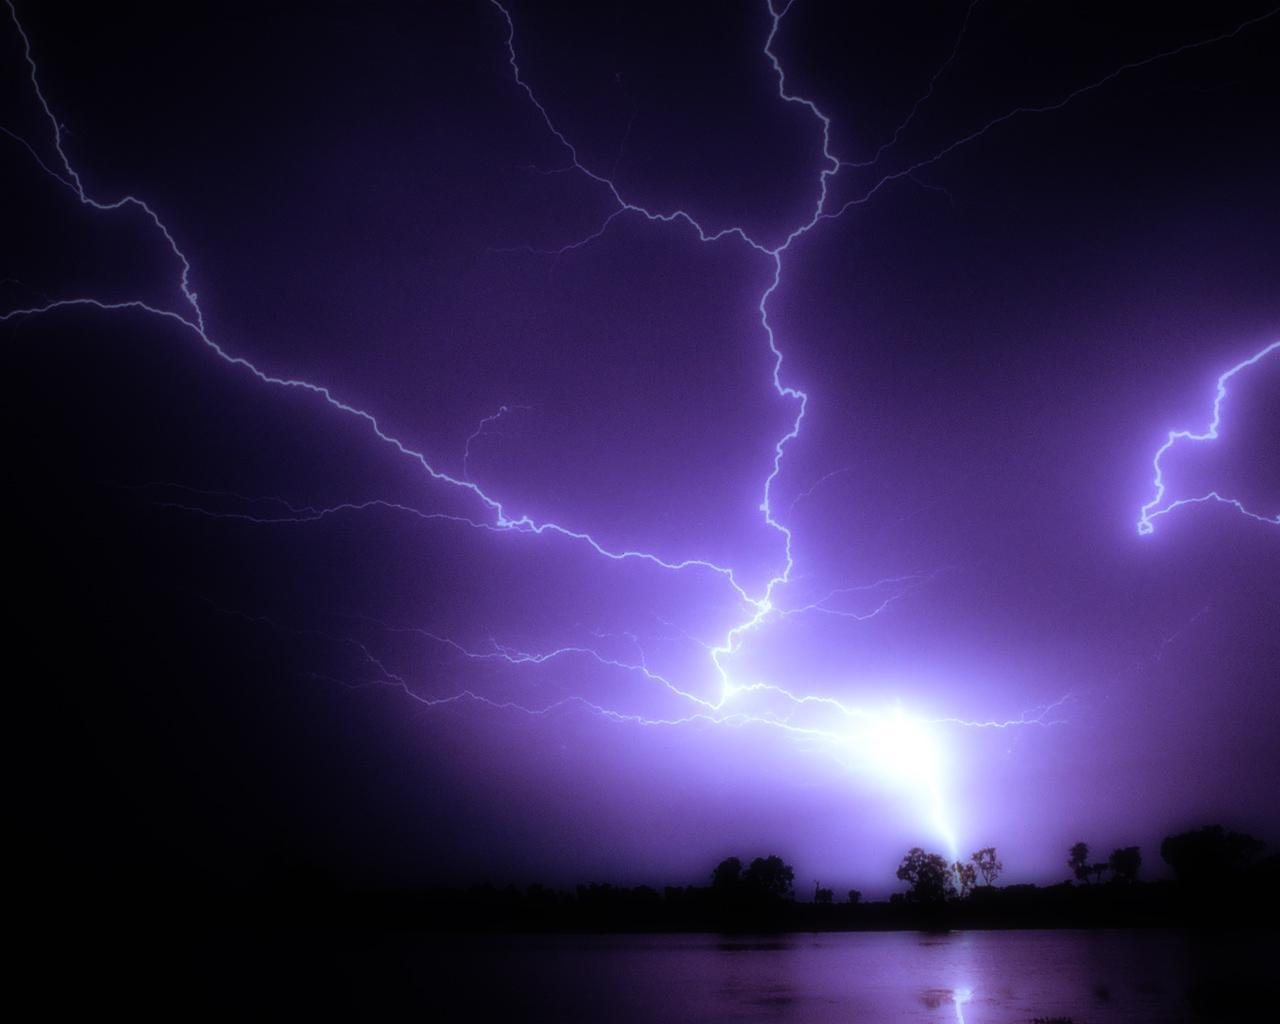 Lightning Wallpaper on Lightning Bolts Hd Wallpaper   General   577419